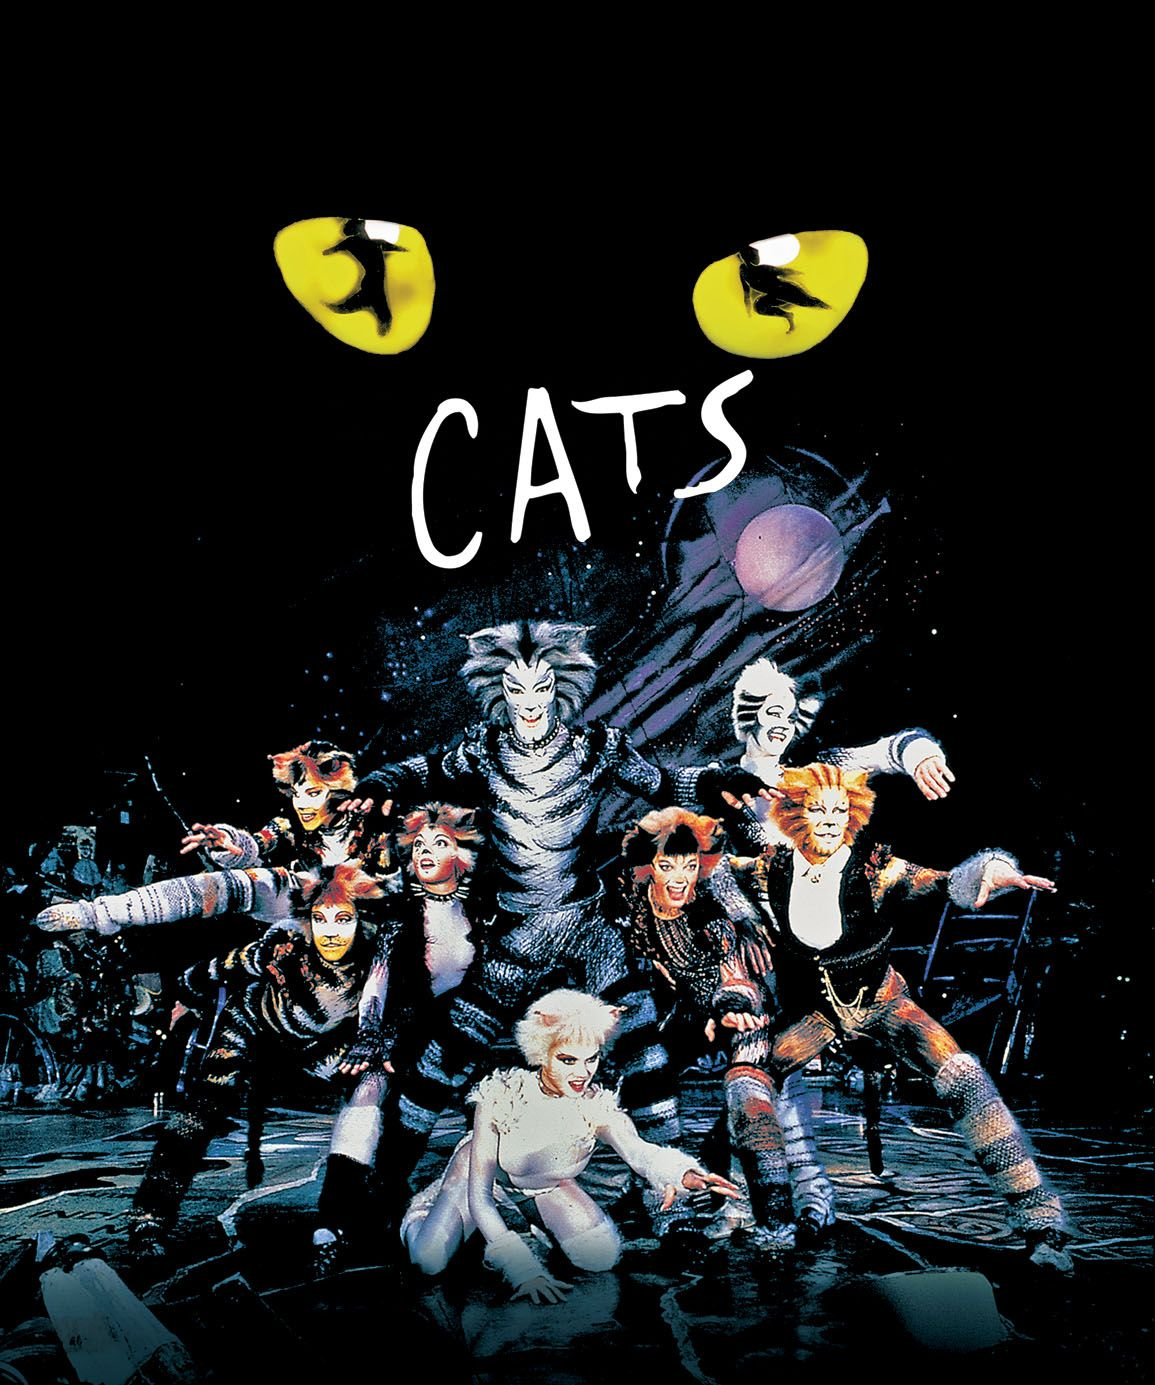 Cats Tom Hooper\u0027s Movie to Star Taylor Swift, Ian McKellen